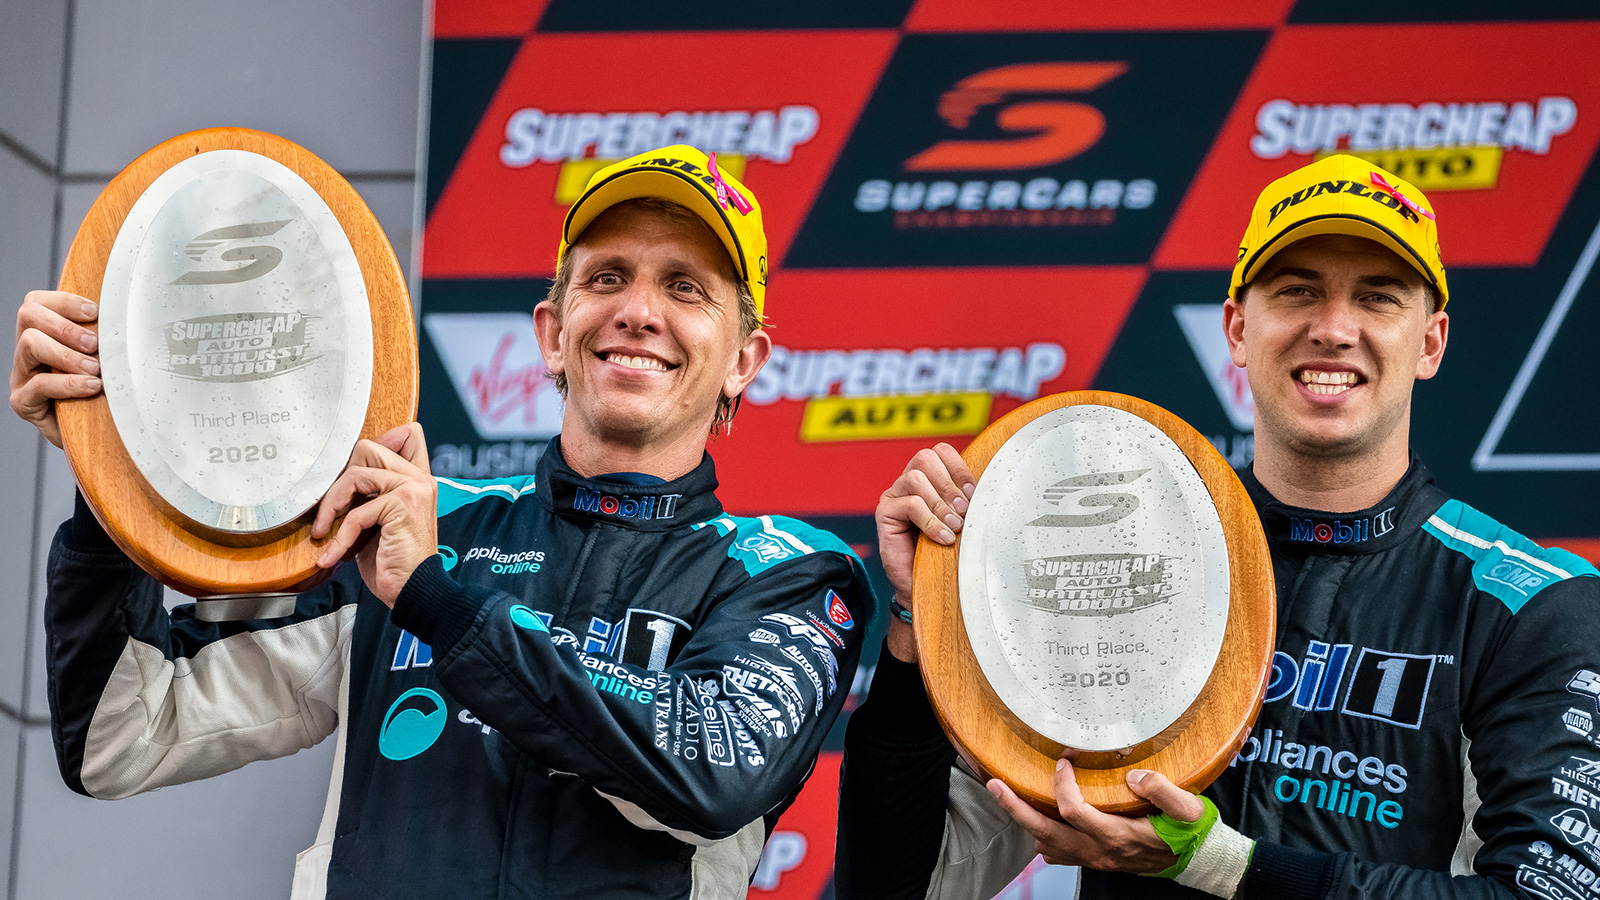 Chaz Mostert (R) and Warren Luff (L) have capped off the 2020 season with a podium in the biggest race of the year.